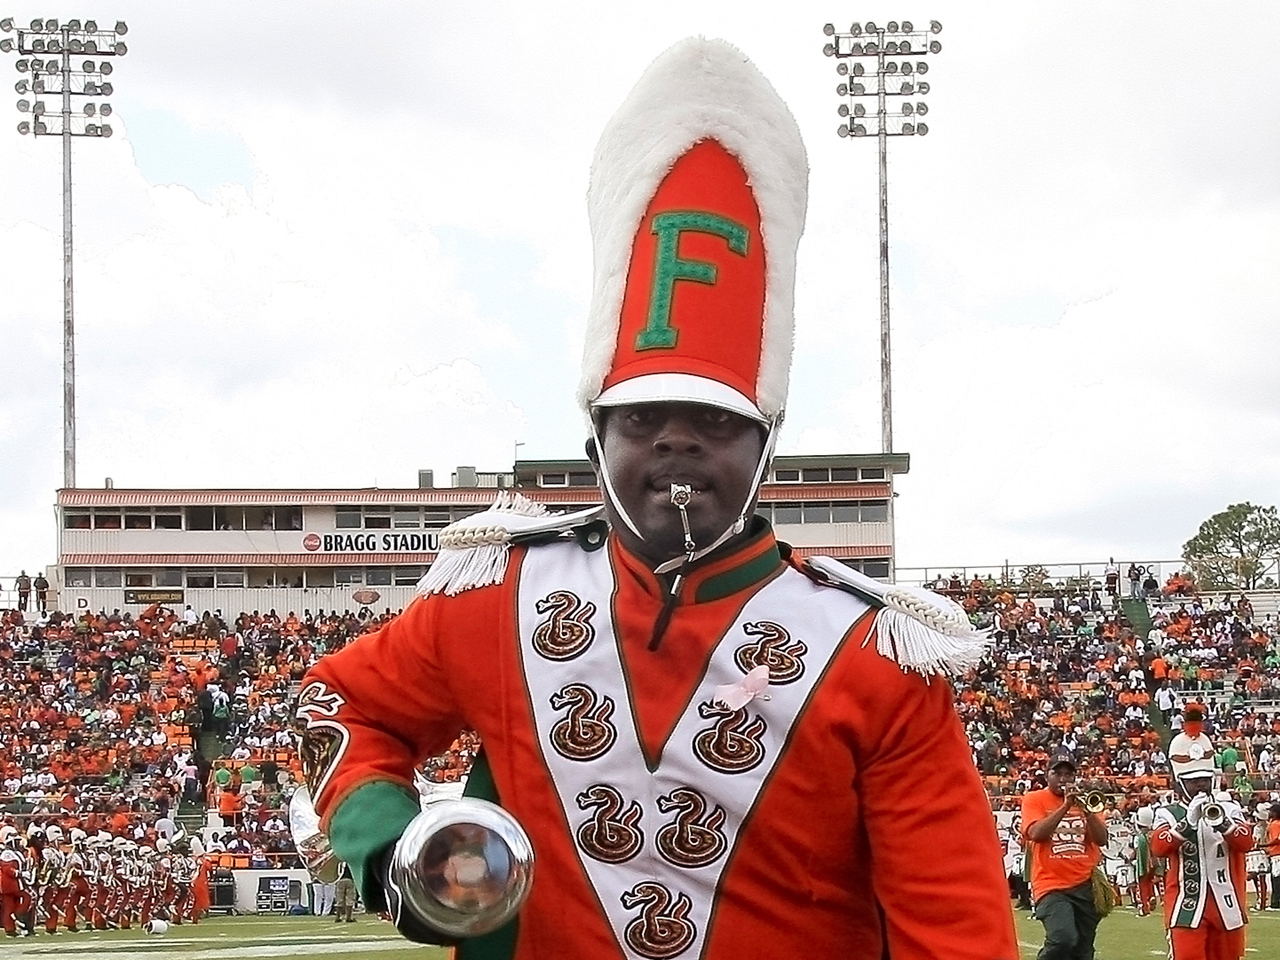 Criminal Charges Coming In Famu Band Hazing Case Cbs News